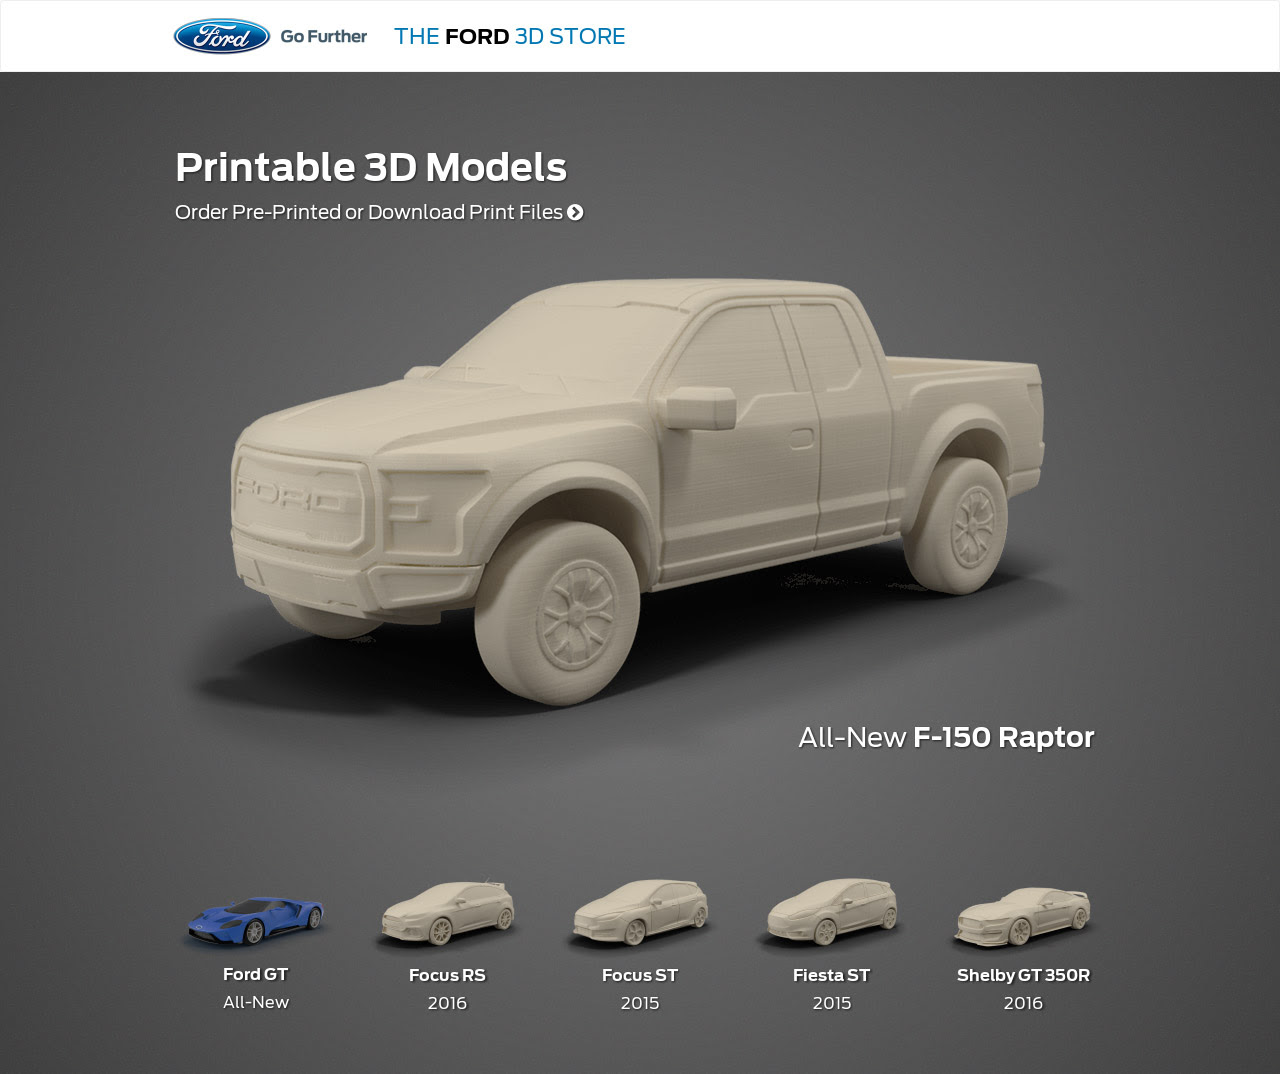 Ford Releases Four Printable 3D Vehicle Models For Download